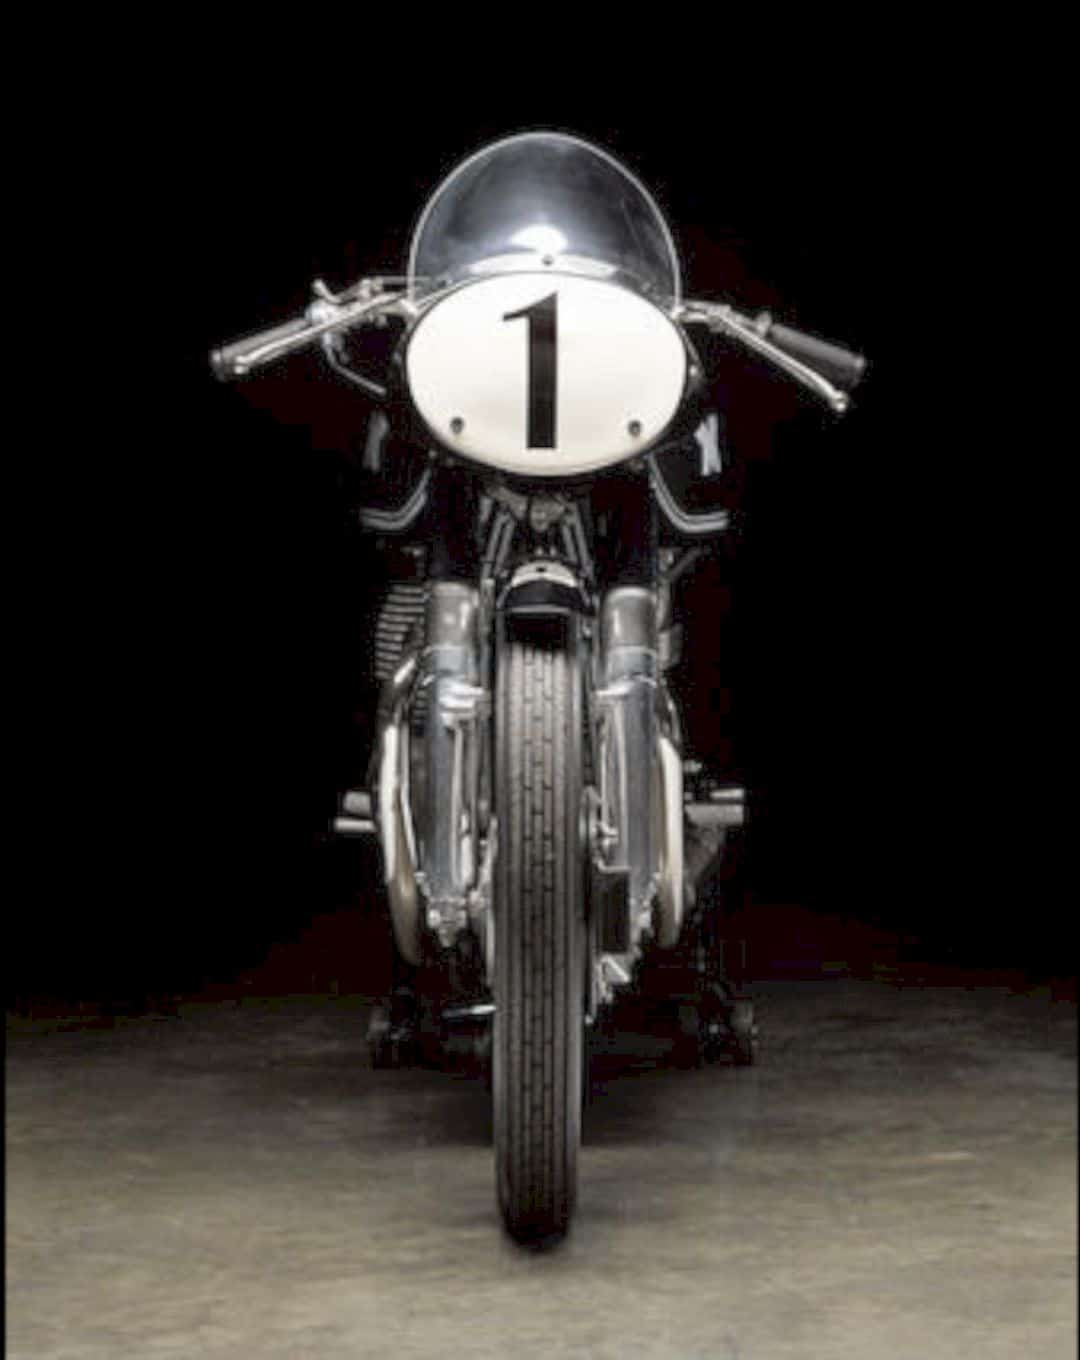 The 1955 Matchless 498cc G45 Motorcycle 4